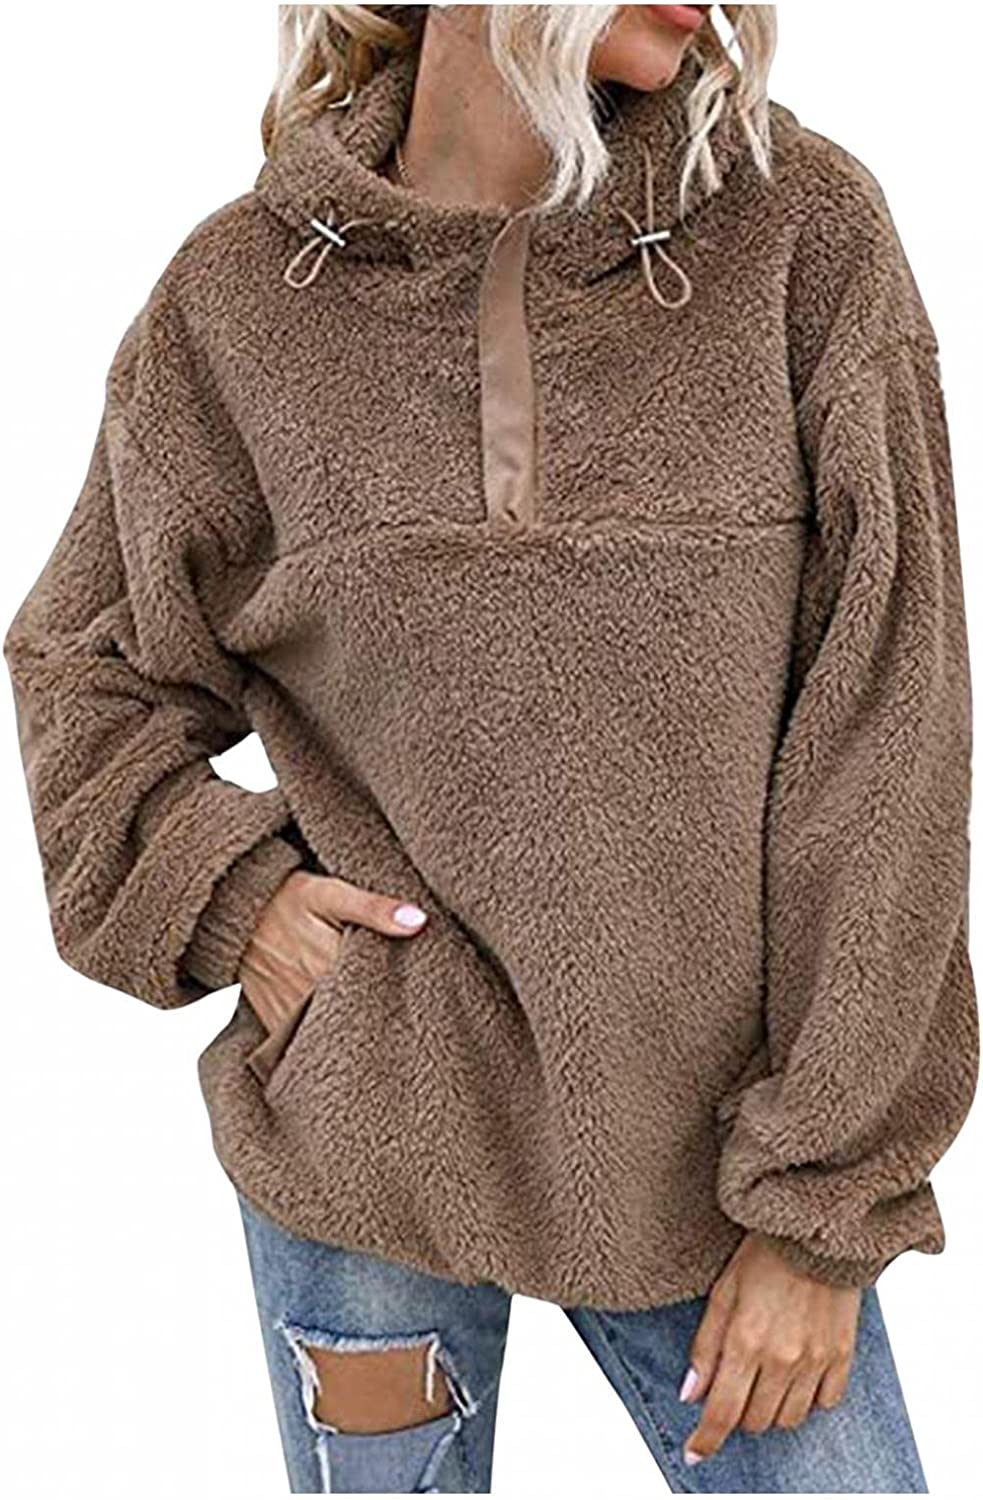 LEIYAN Womens Oversized Sherpa Hoodie Pullover Long Batwing Sleeve Shaggy Pullovers with Pockets Tops Outwear